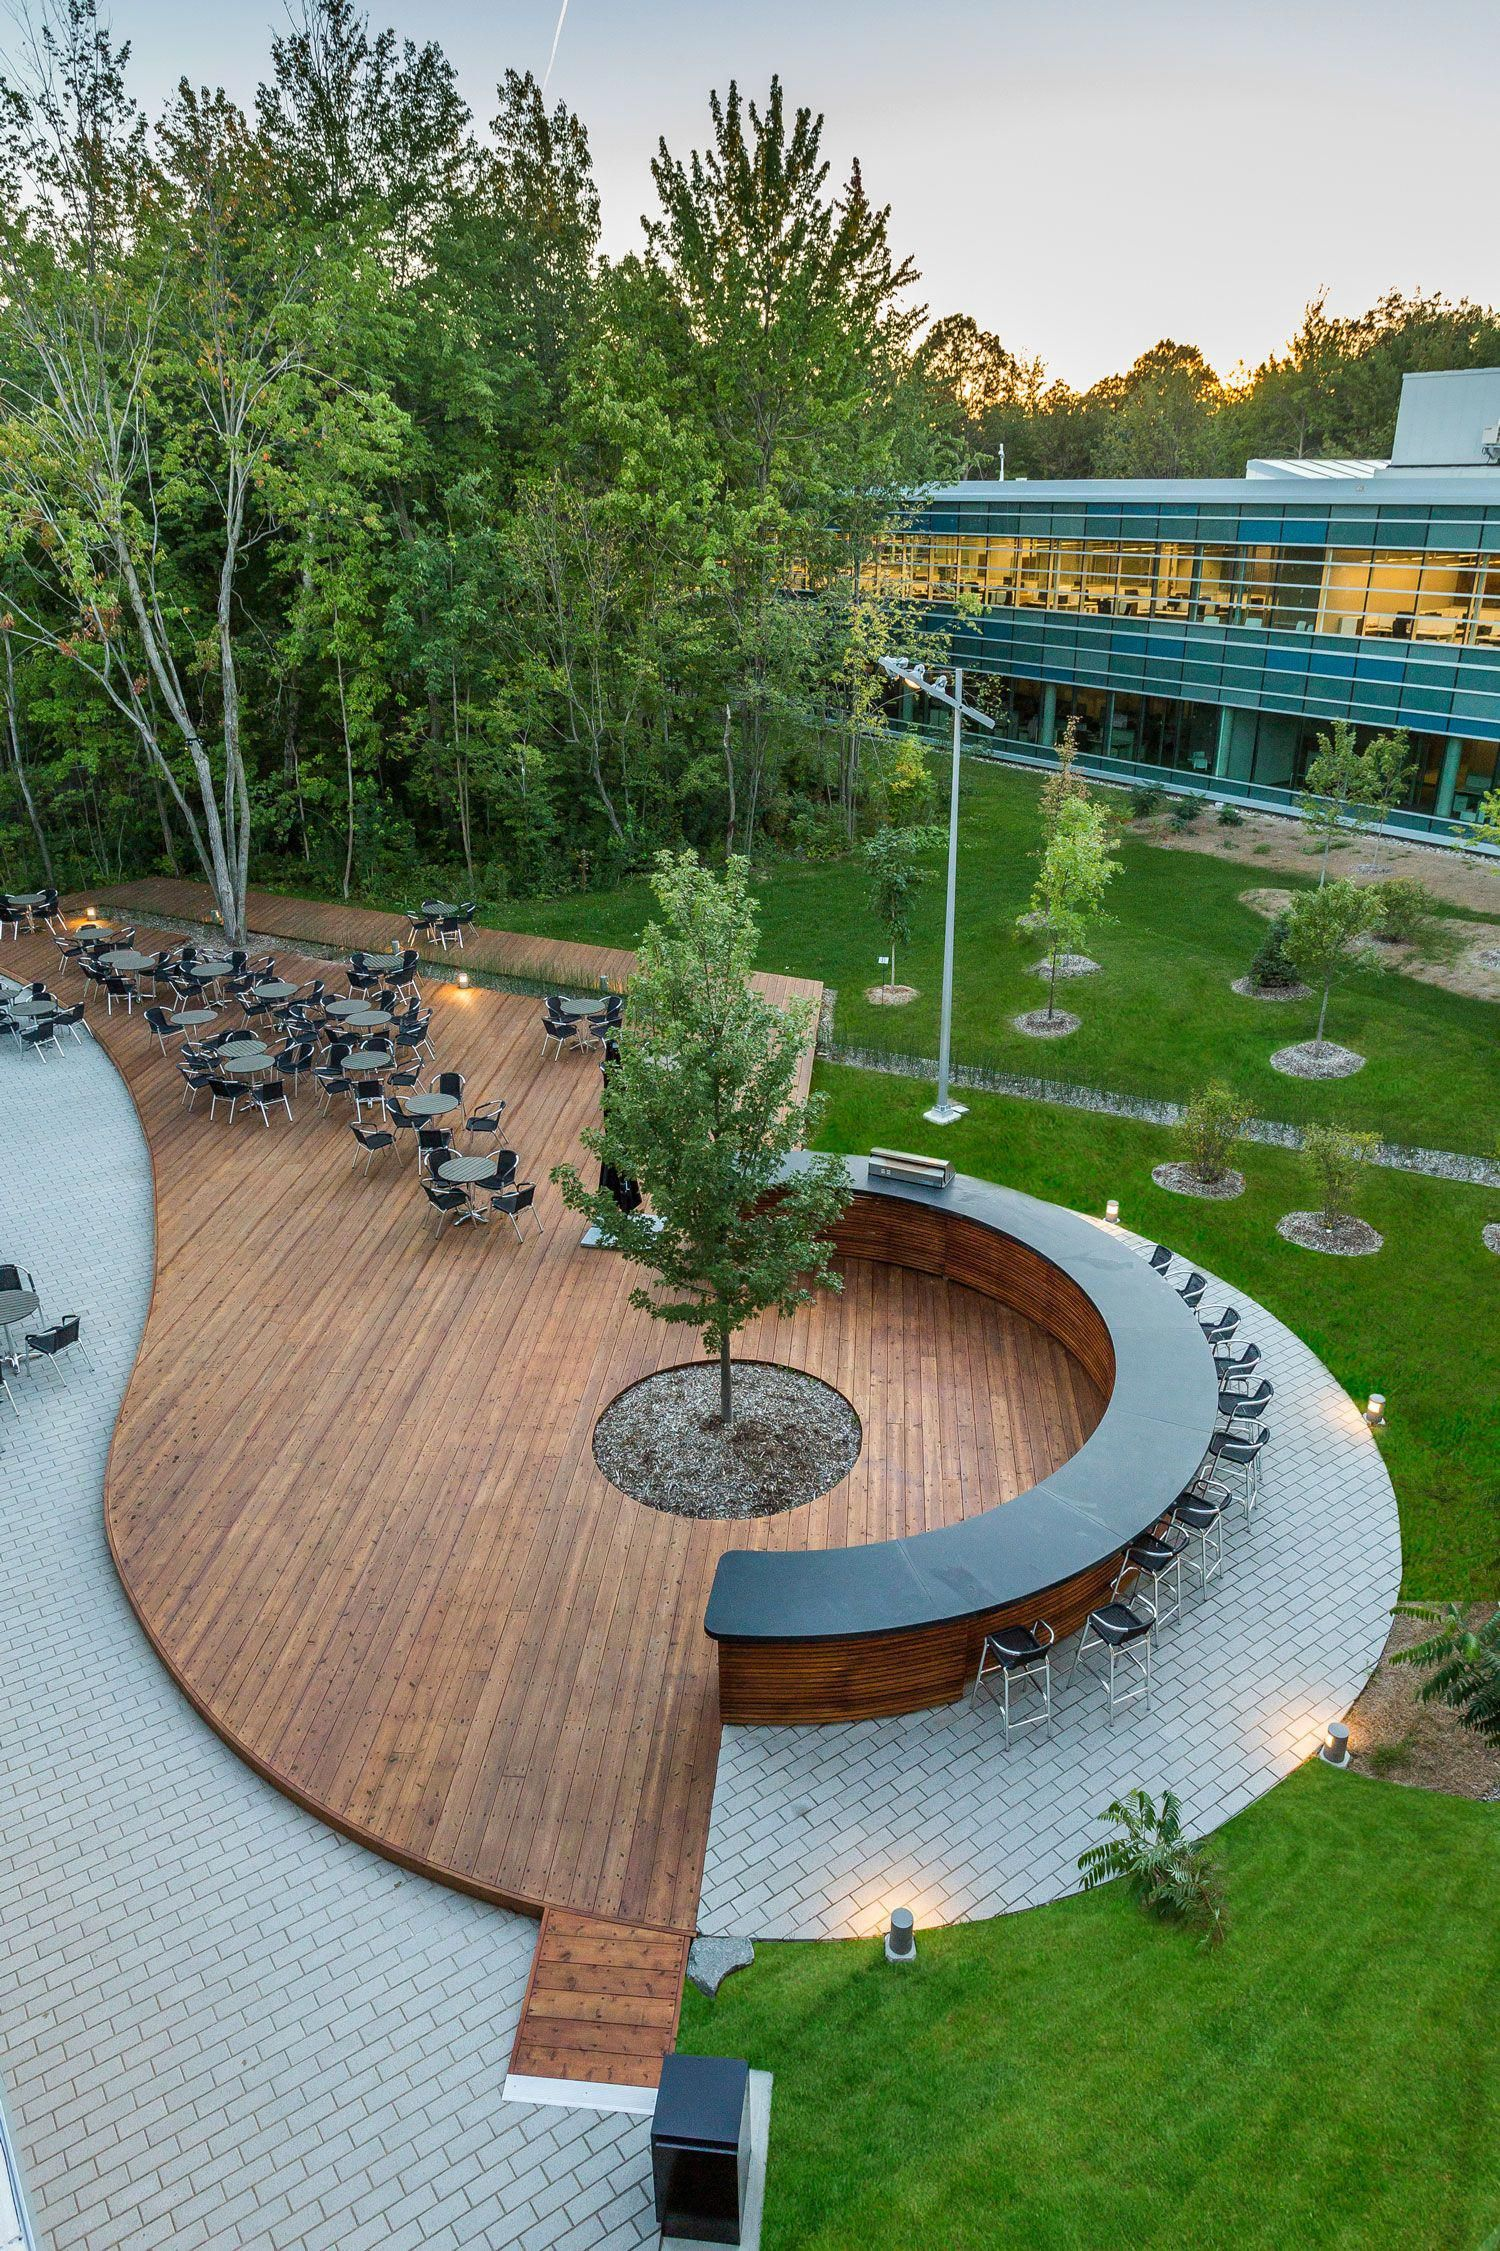 Rock Solid Advice On How To Spruce Up Your Landscaping Projeto Paisagistico Moderno Projeto Paisagistico Para O Quintal Paisagismo Moderno